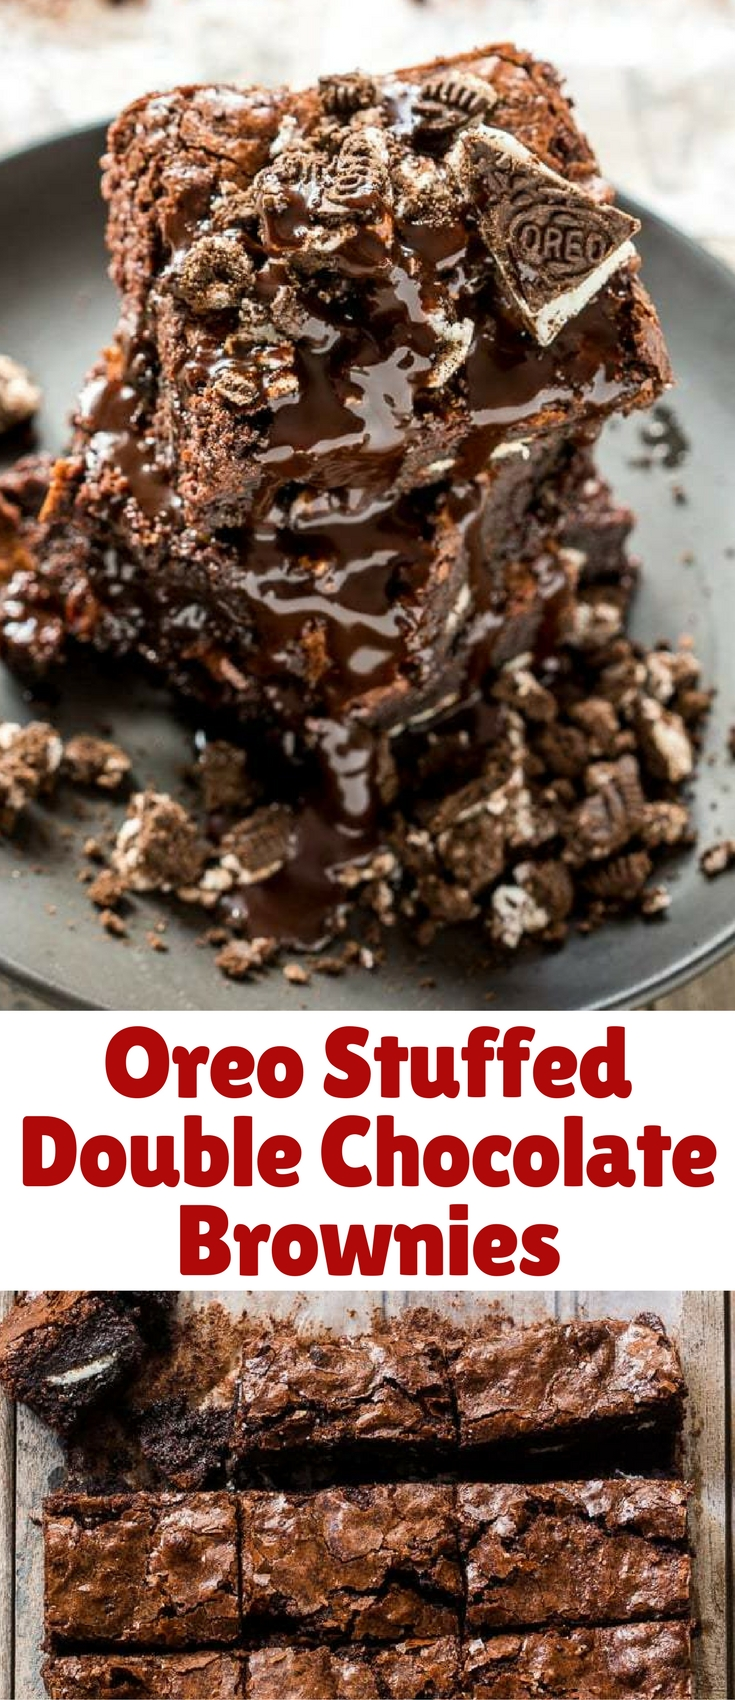 These brownies are everything you want in life - stuffed with oreos, super fudgy and double chocolate! And you won't believe how easy they are to make!